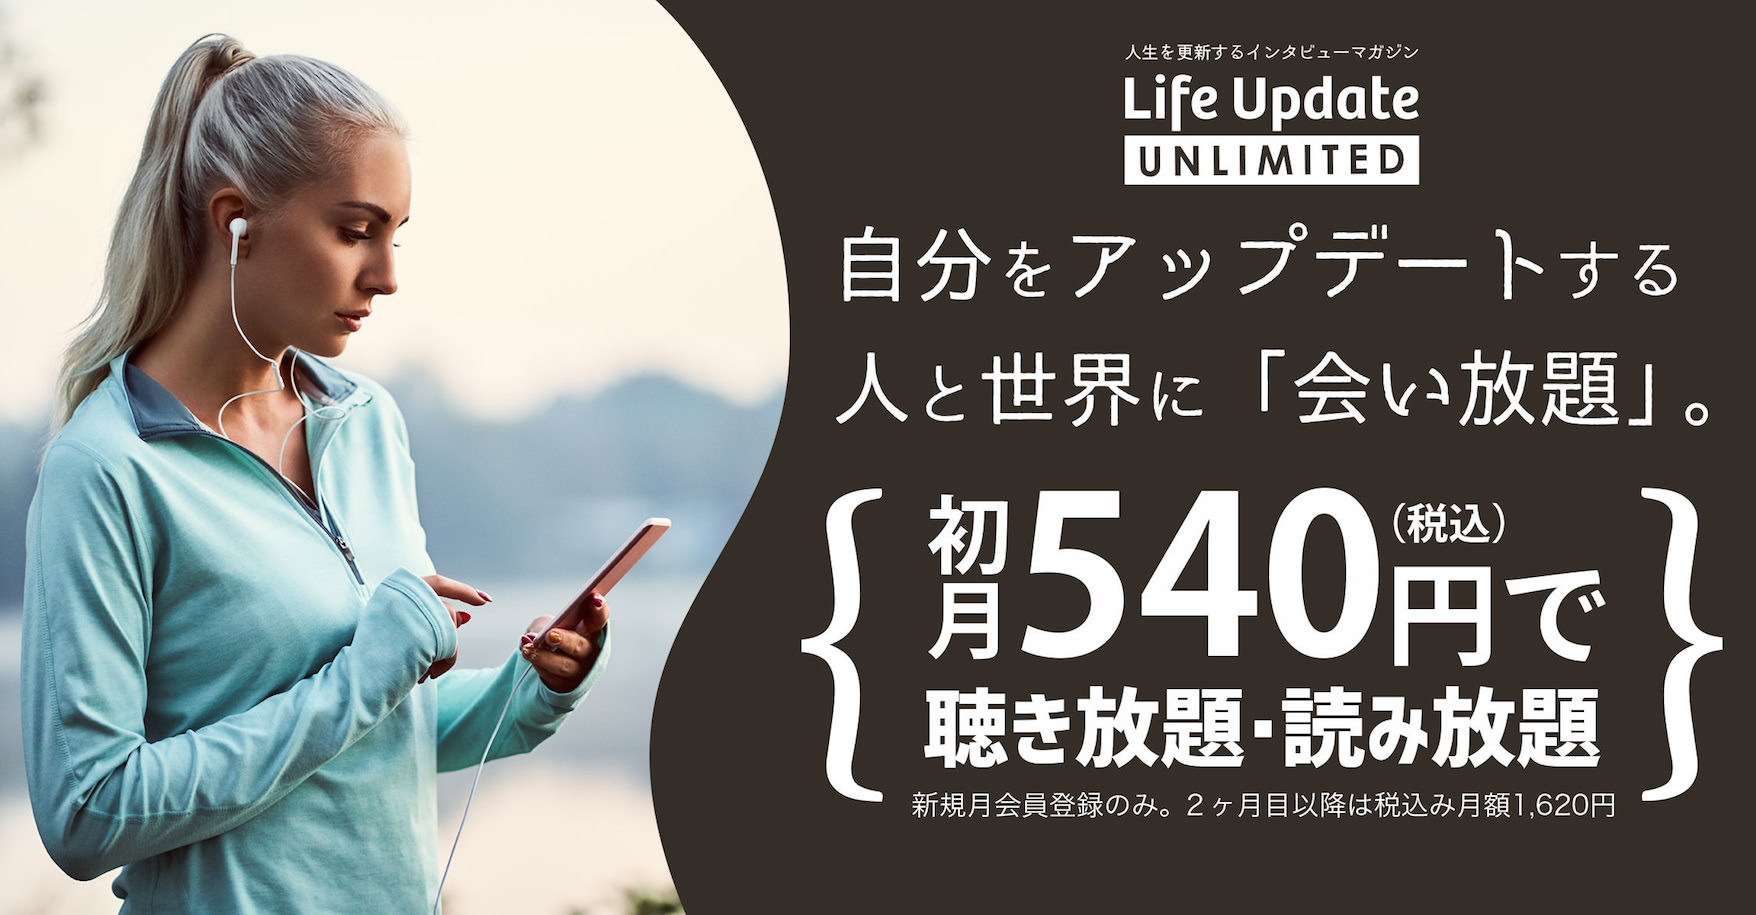 life-update-unlimited